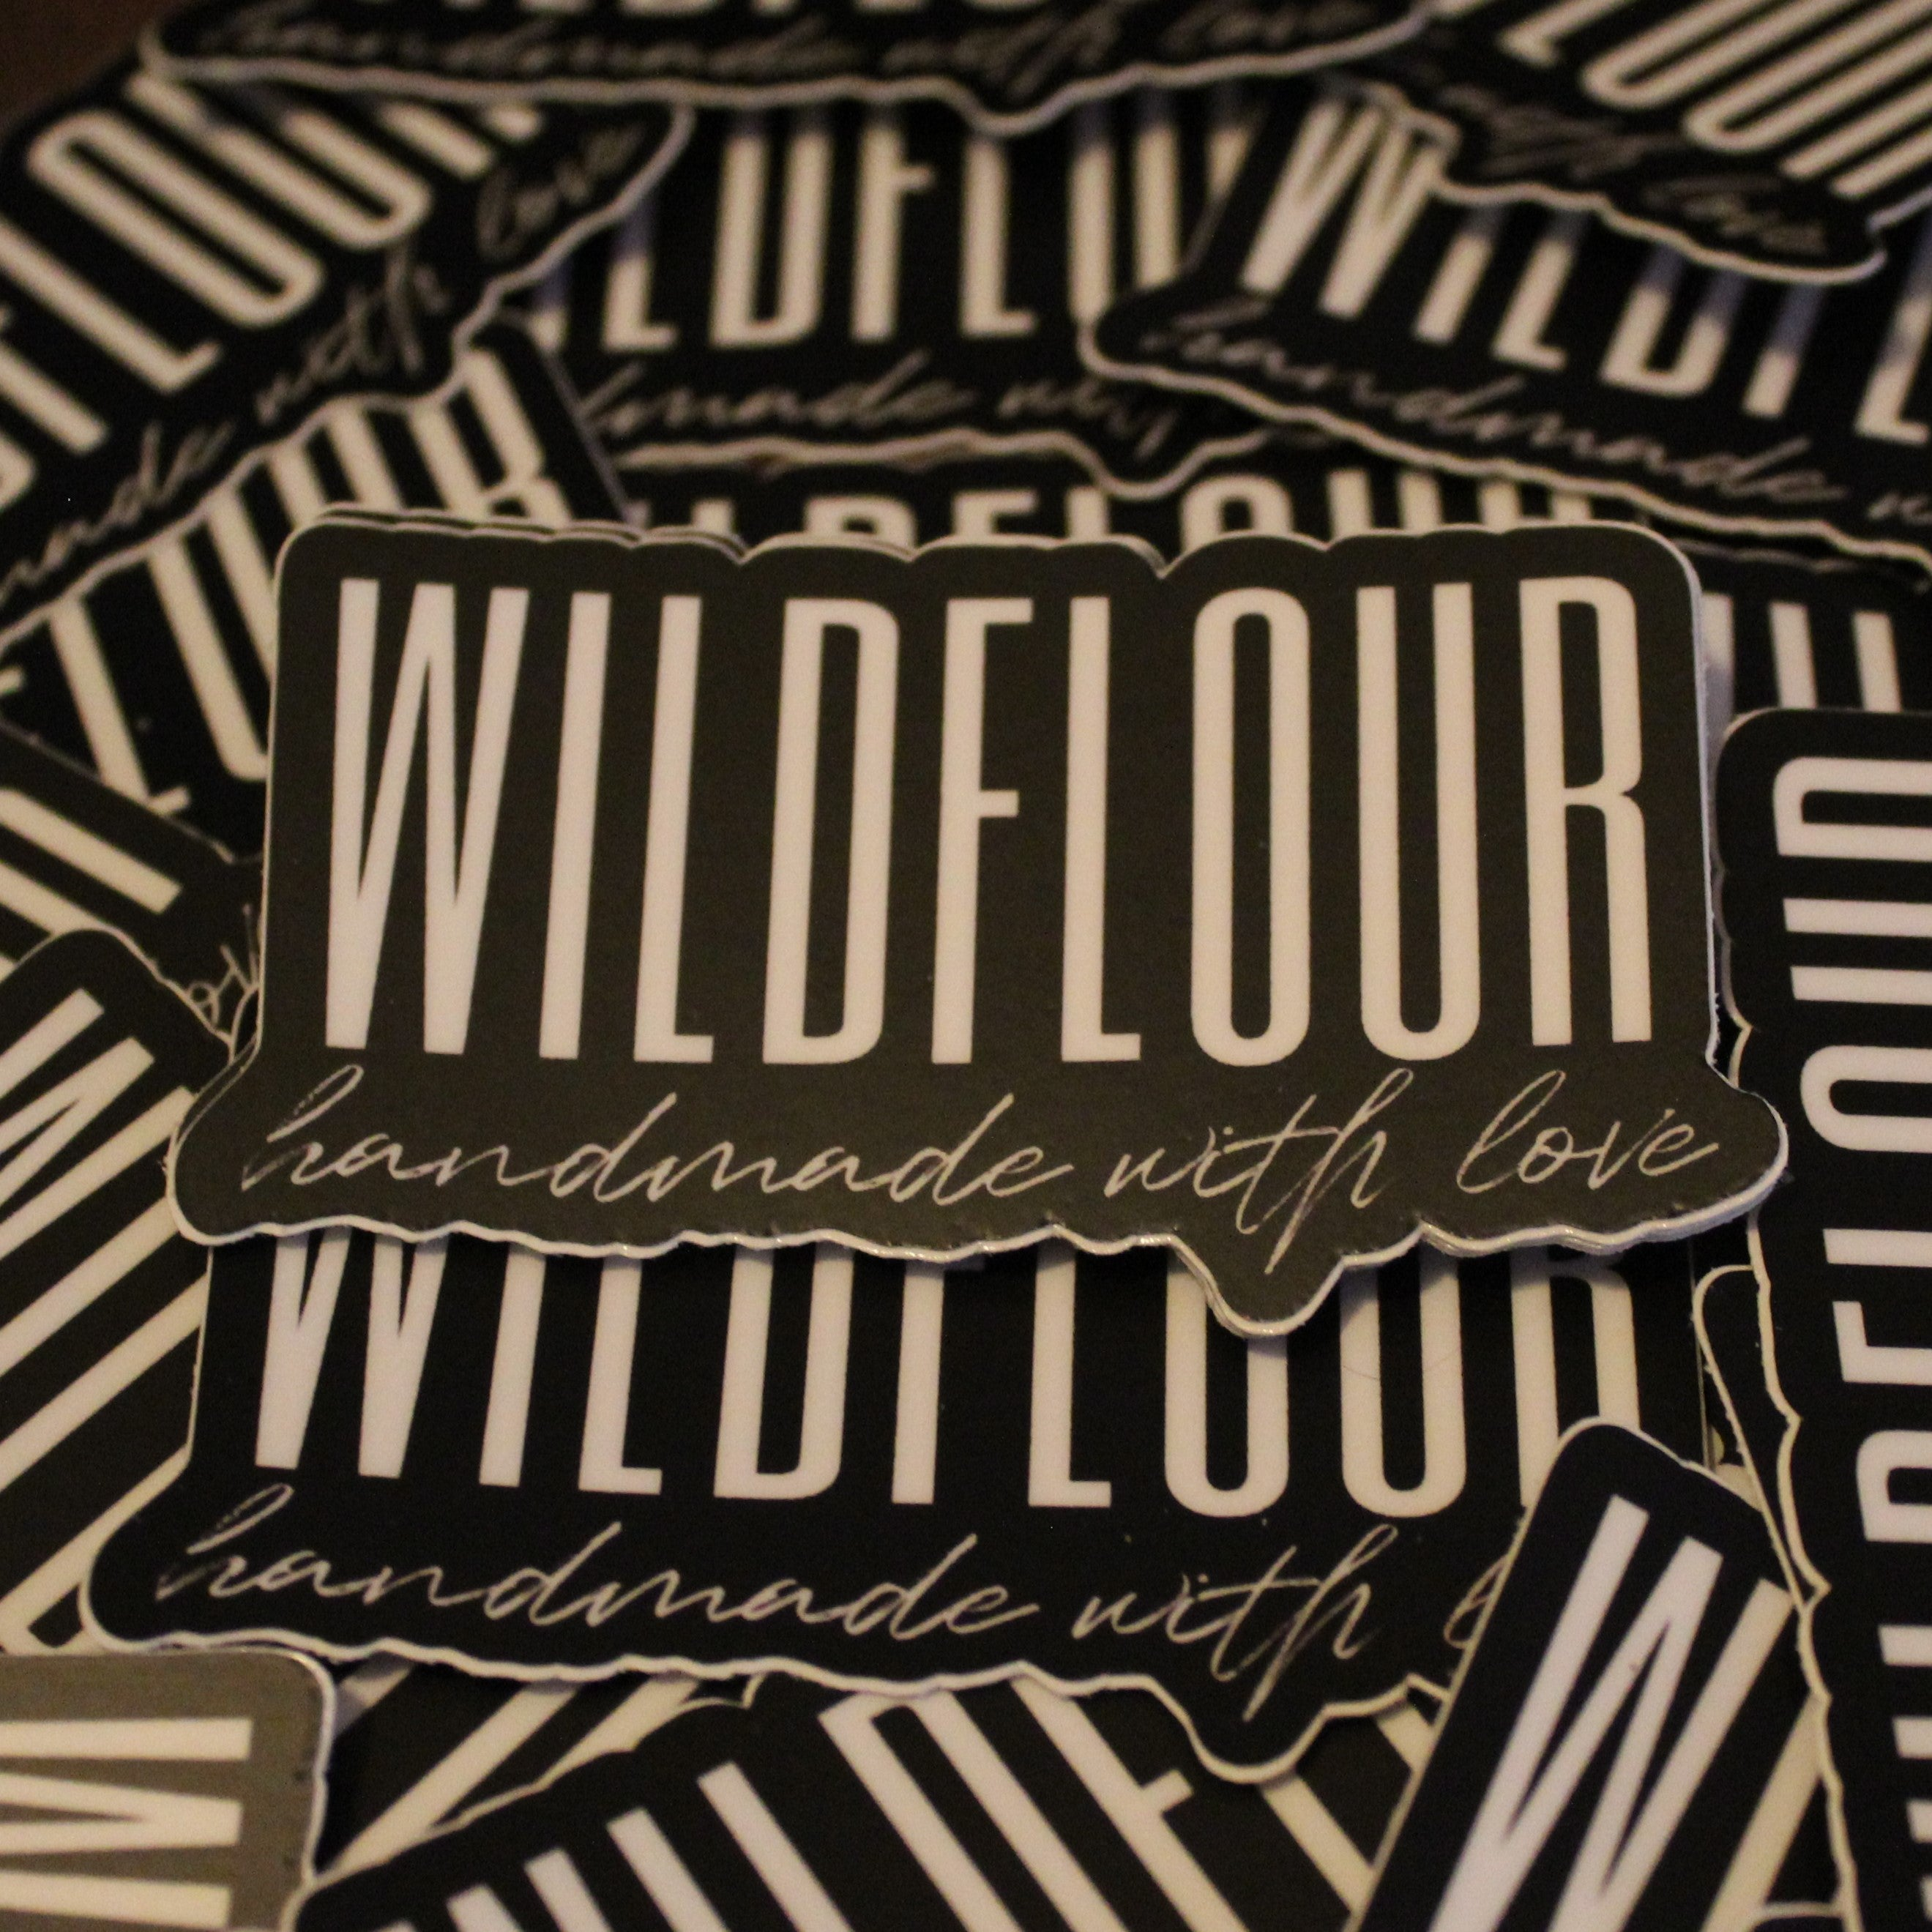 Wildflour Classic Sticker